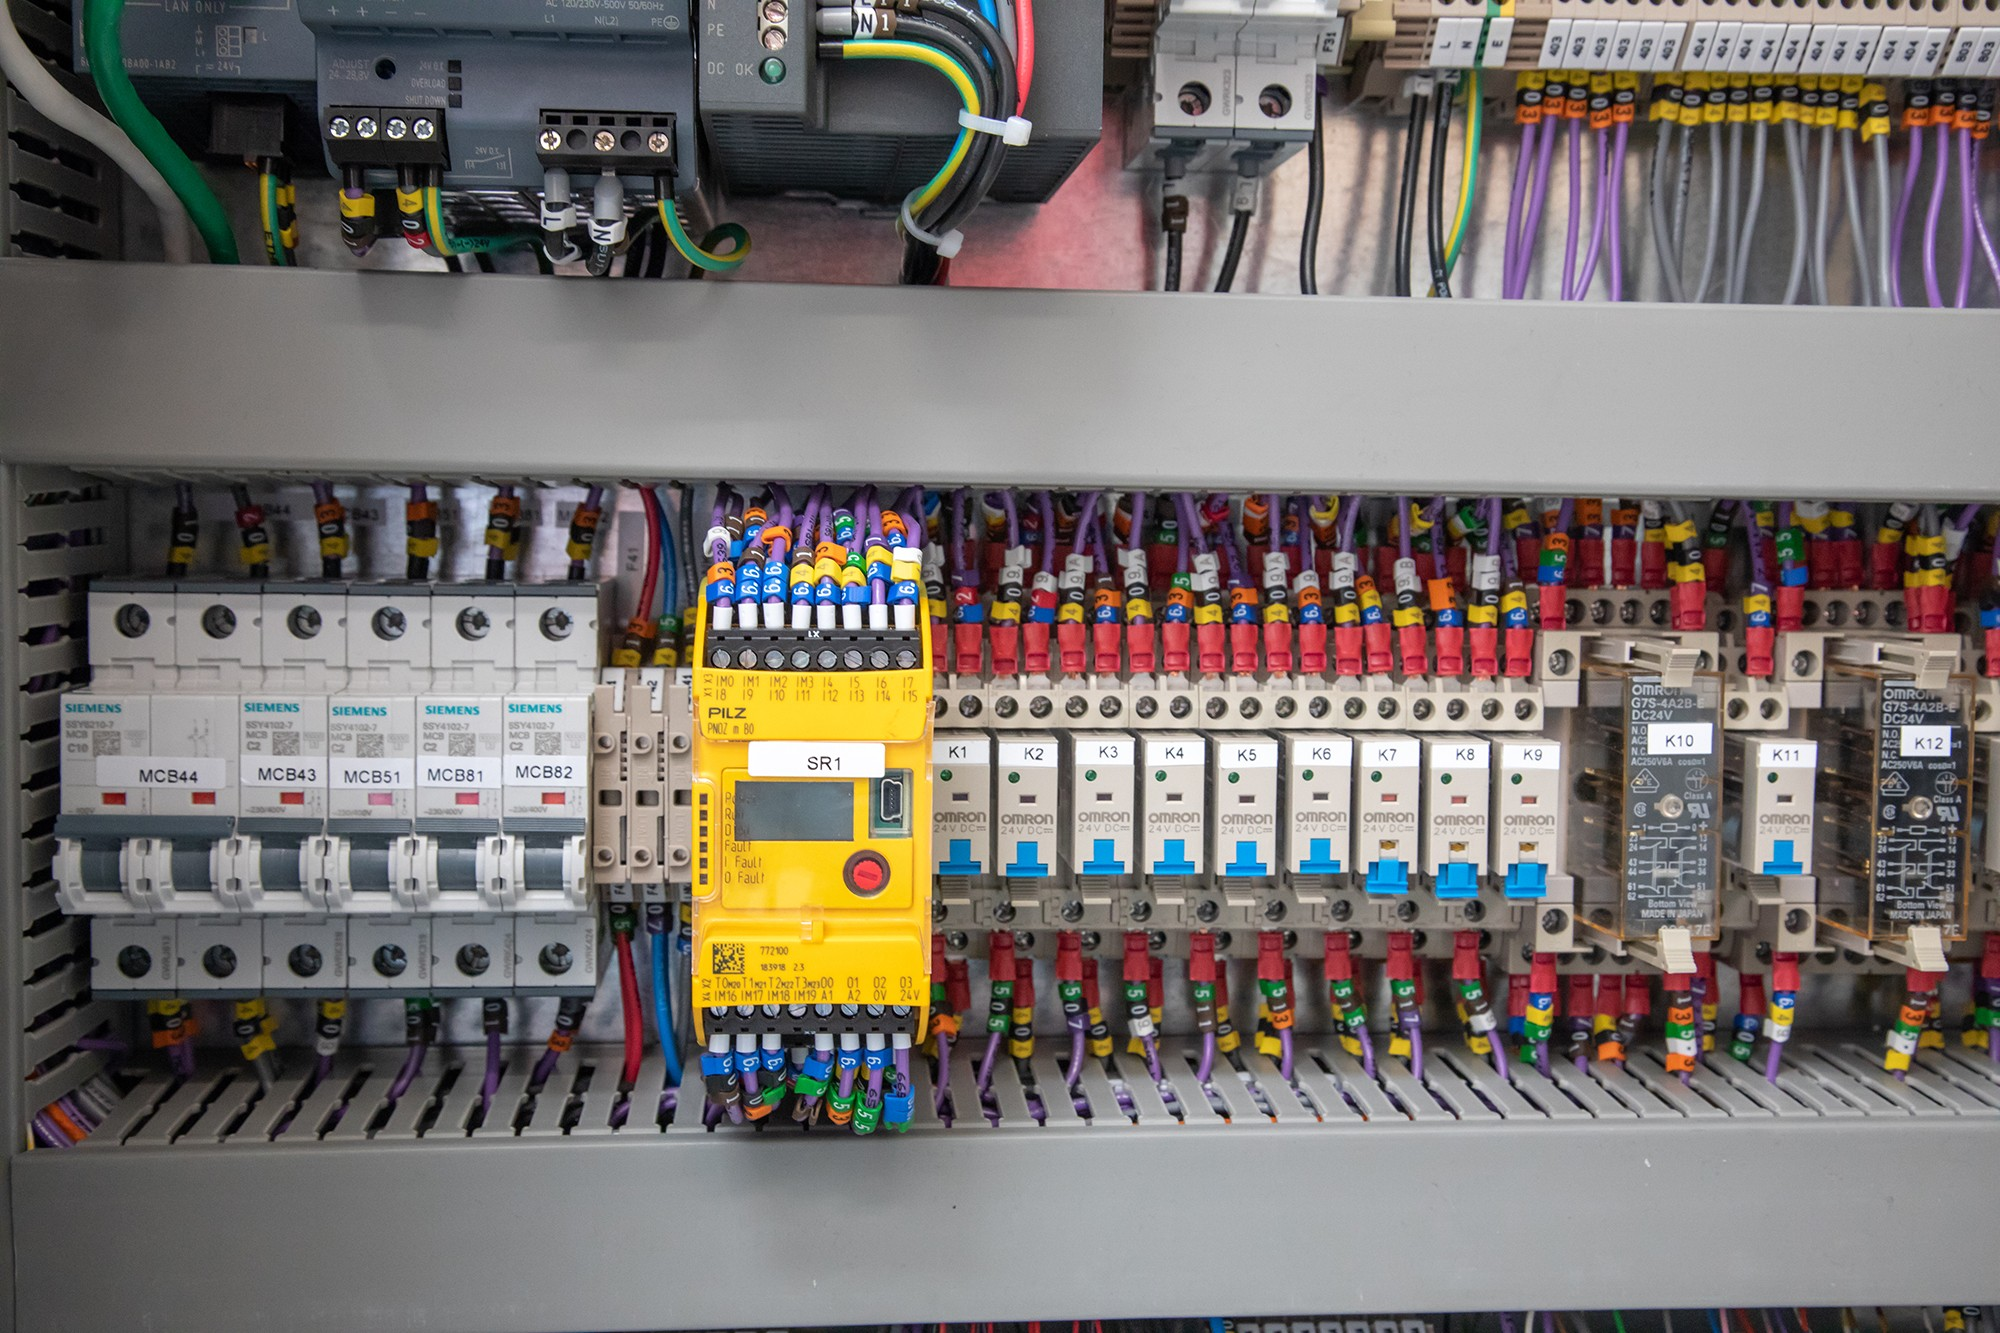 Electrical control & automation » pp 25 » PP Control & Automation